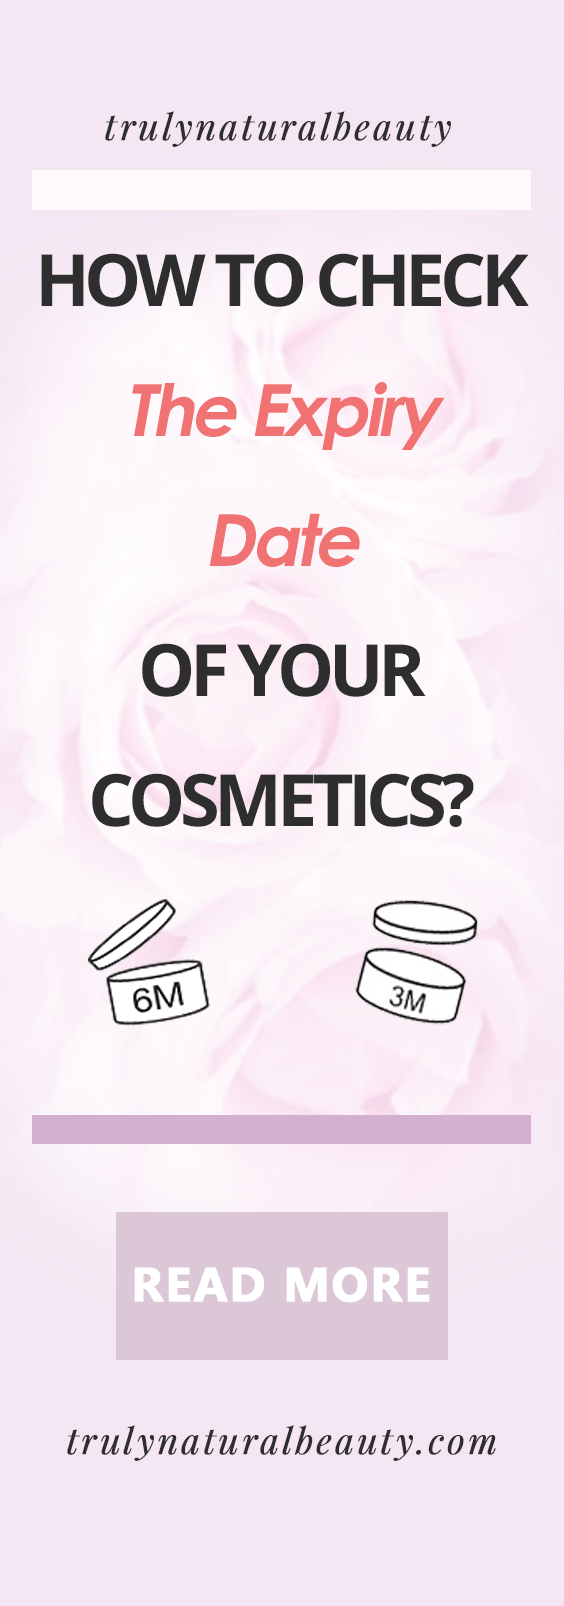 How To Check The Expiry Date Of Your Cosmetics? This is an awesome guide to know more about expiration date, pao, how to store well your beauty products. cosmetic expiry date, what is pao, cosmetic expiry date, checkcosmetic, makeup expiration, how long does mascara last, checkdate, how long does makeup last, does perfume expire, how long does eyeshadow last, check expiration date, manufacture date, check cosmetic expiry date, when does makeup expire, how often should you replace mascara,